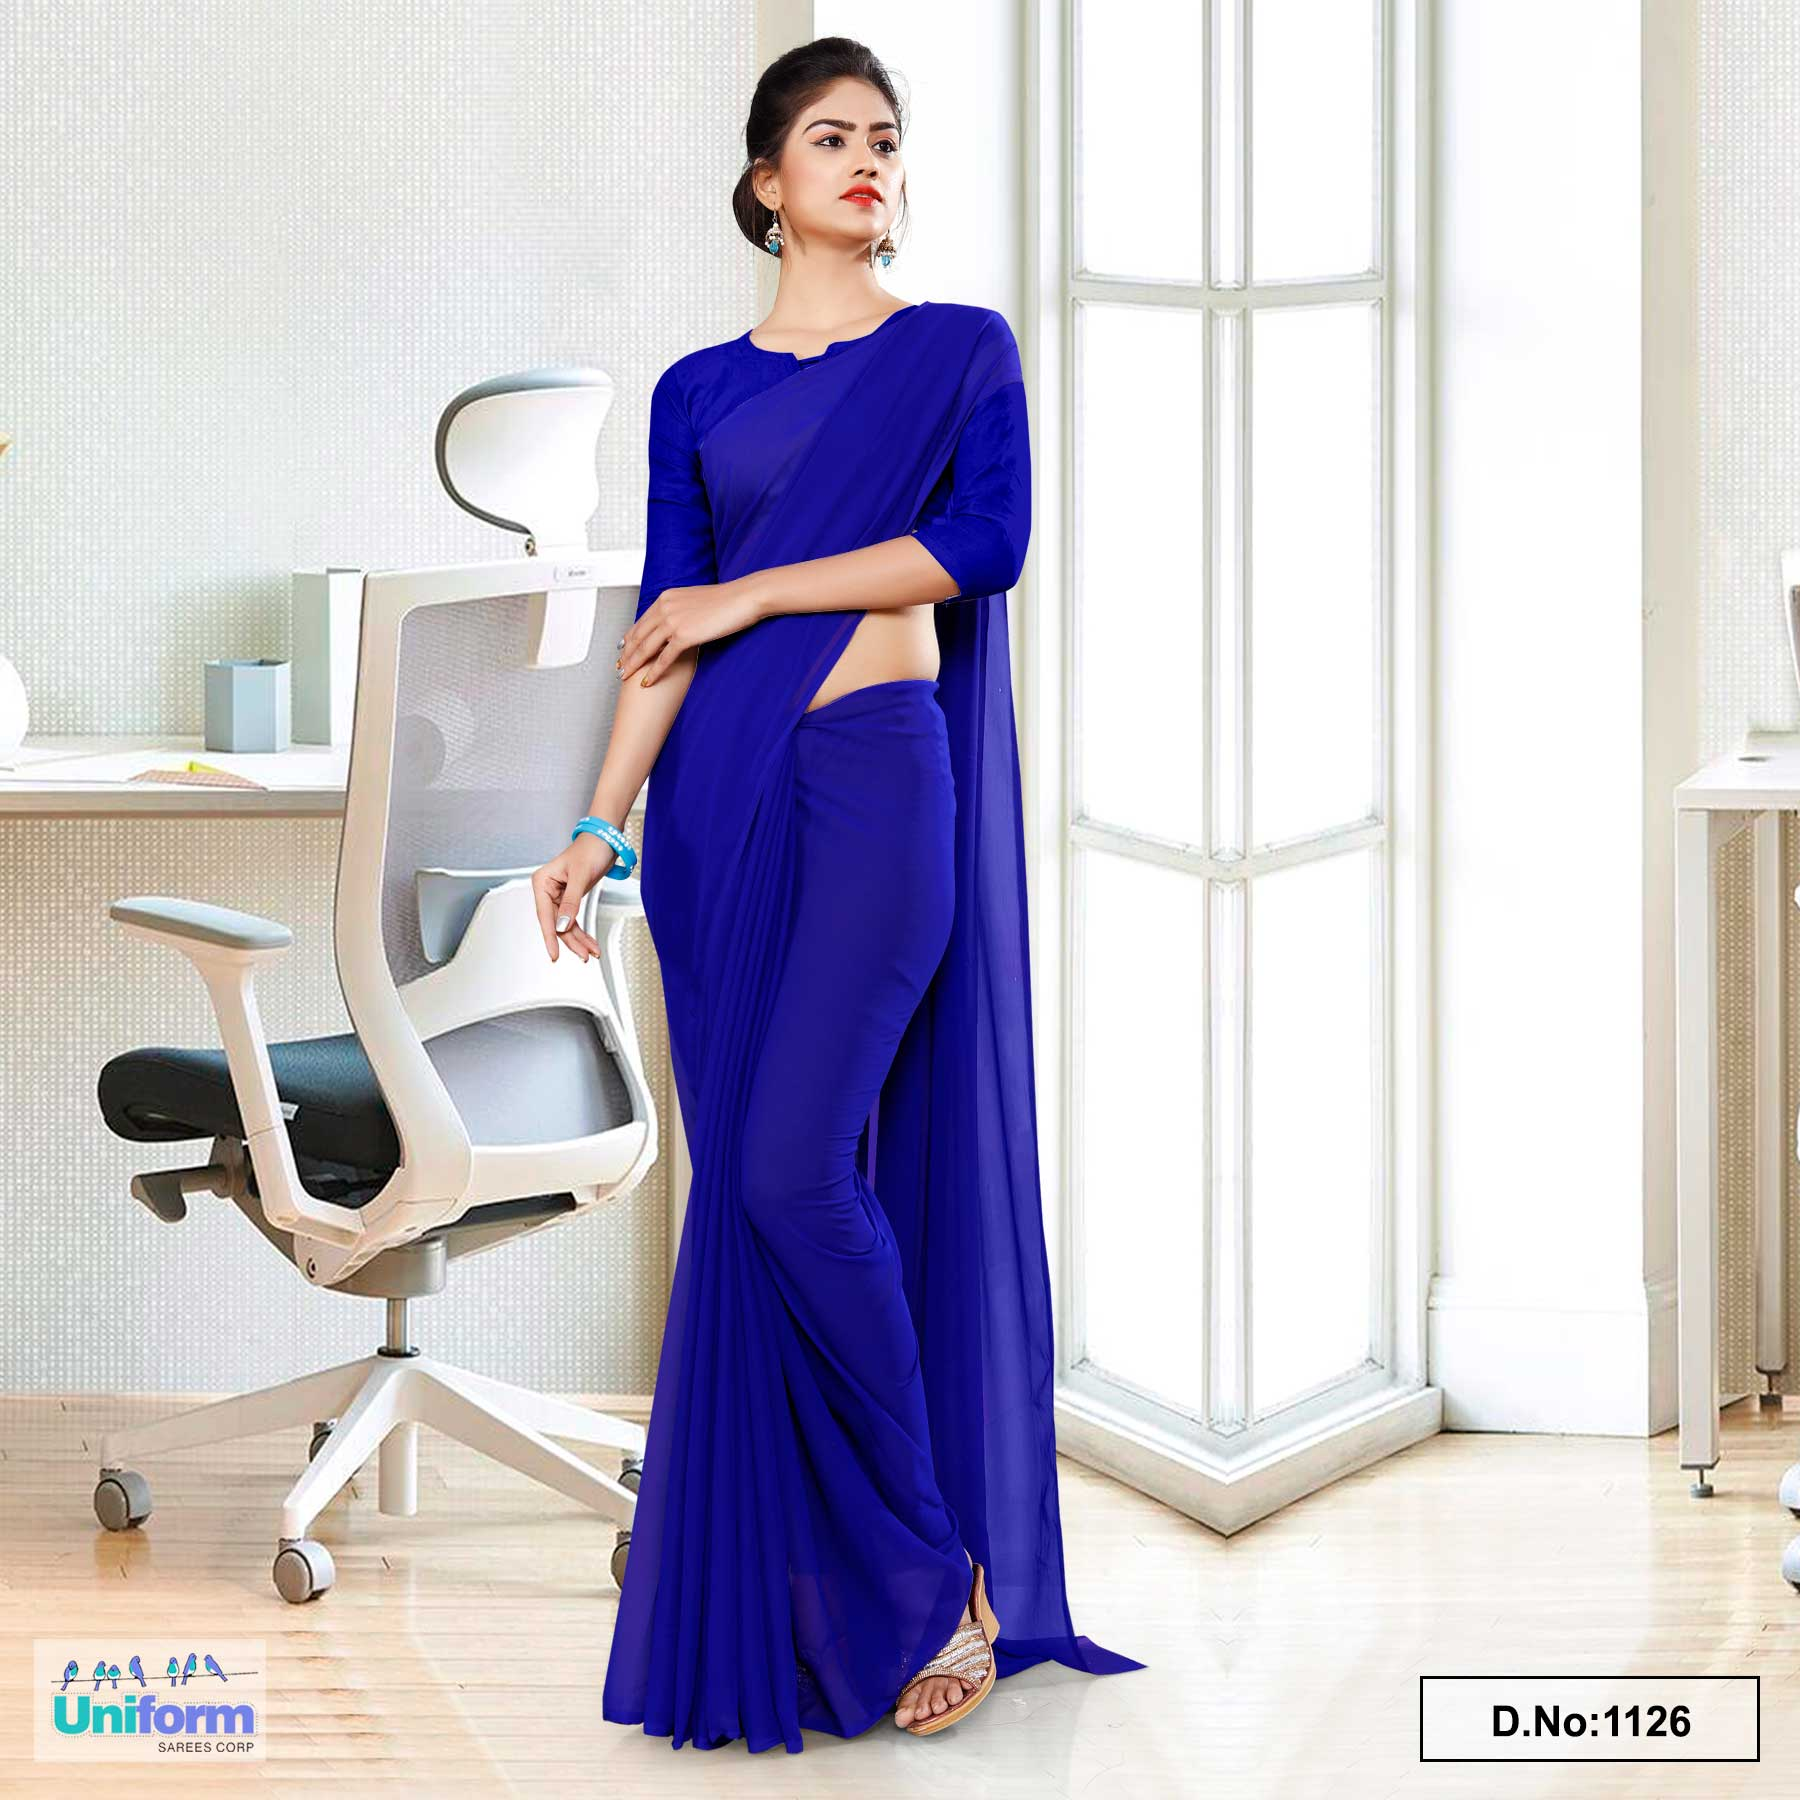 Dark Blue Soft Georgette Plain Uniform Sarees For Cleaning  Staff